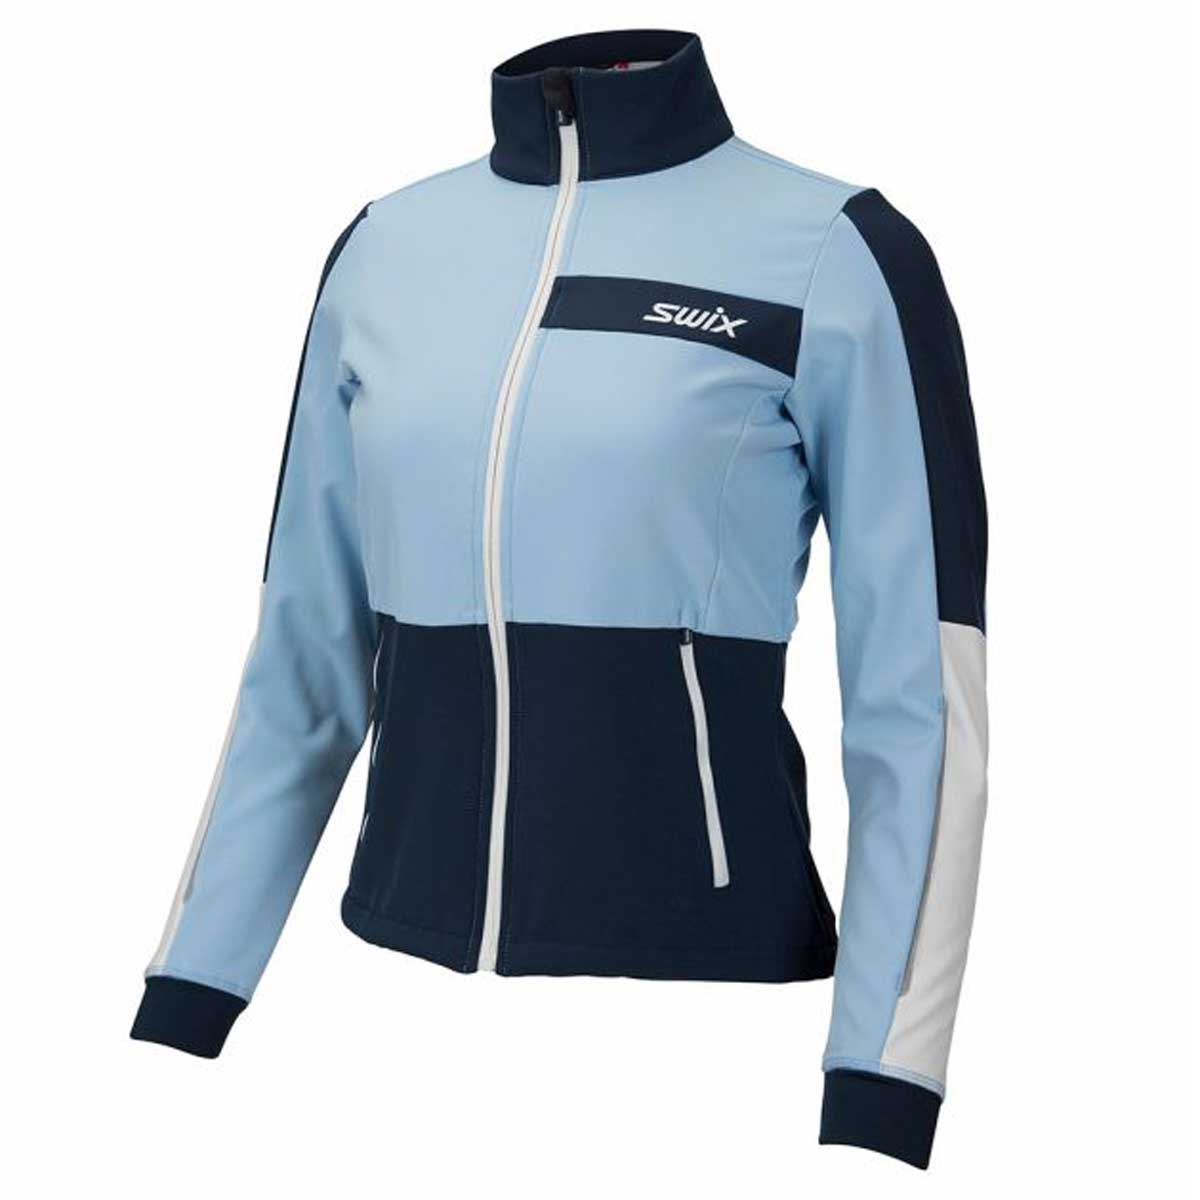 Swix Women's Strive Jacket in Blue Bell